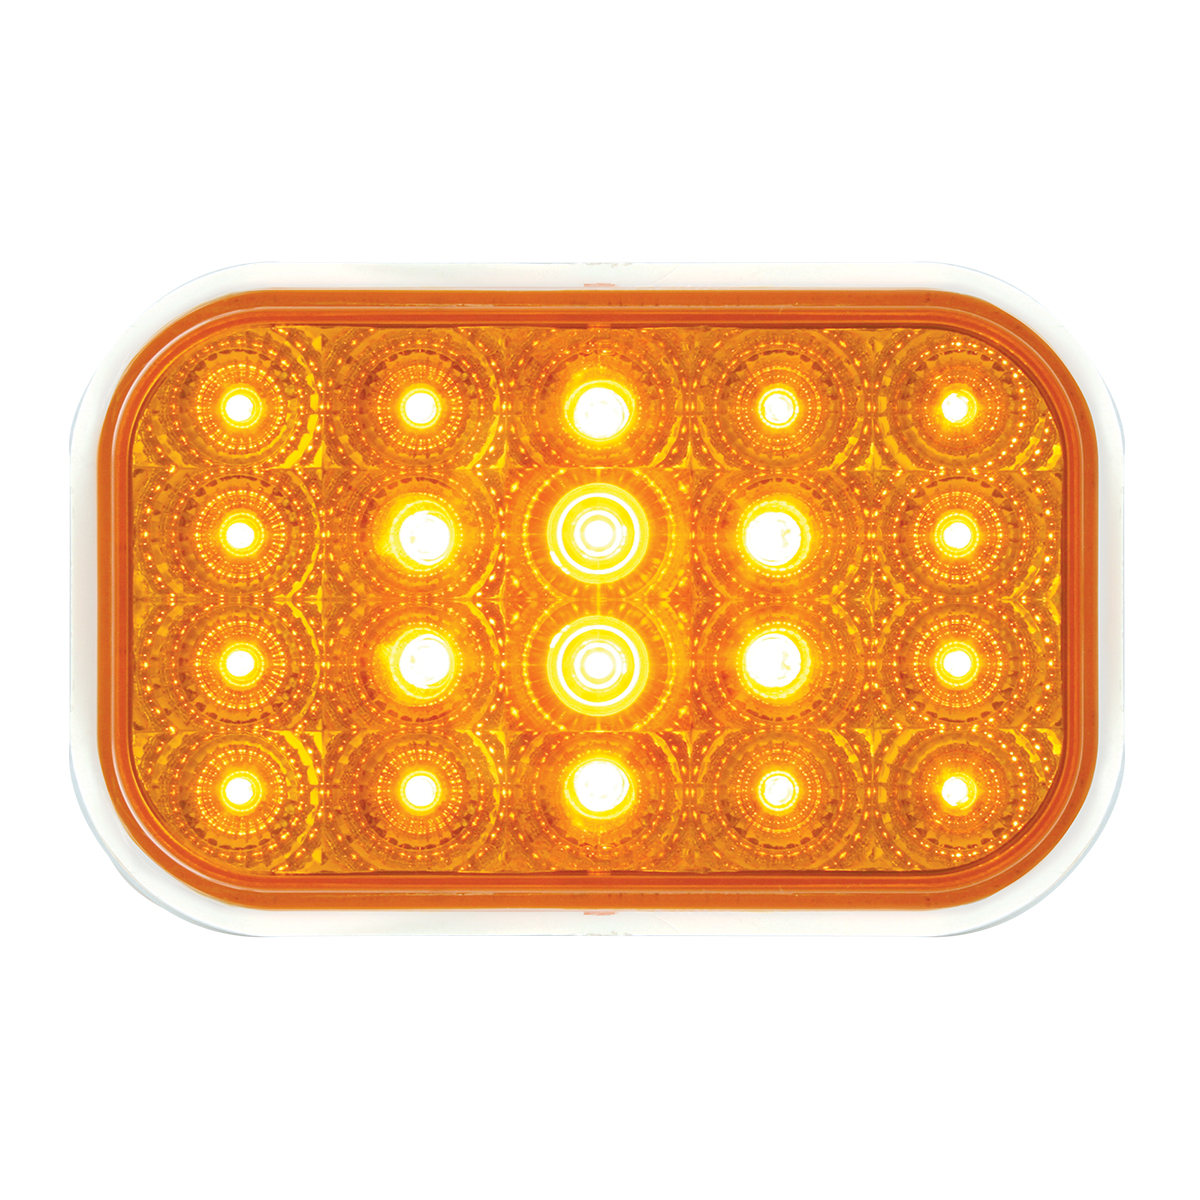 77010 Rectangular Spyder LED Light in Amber/Amber